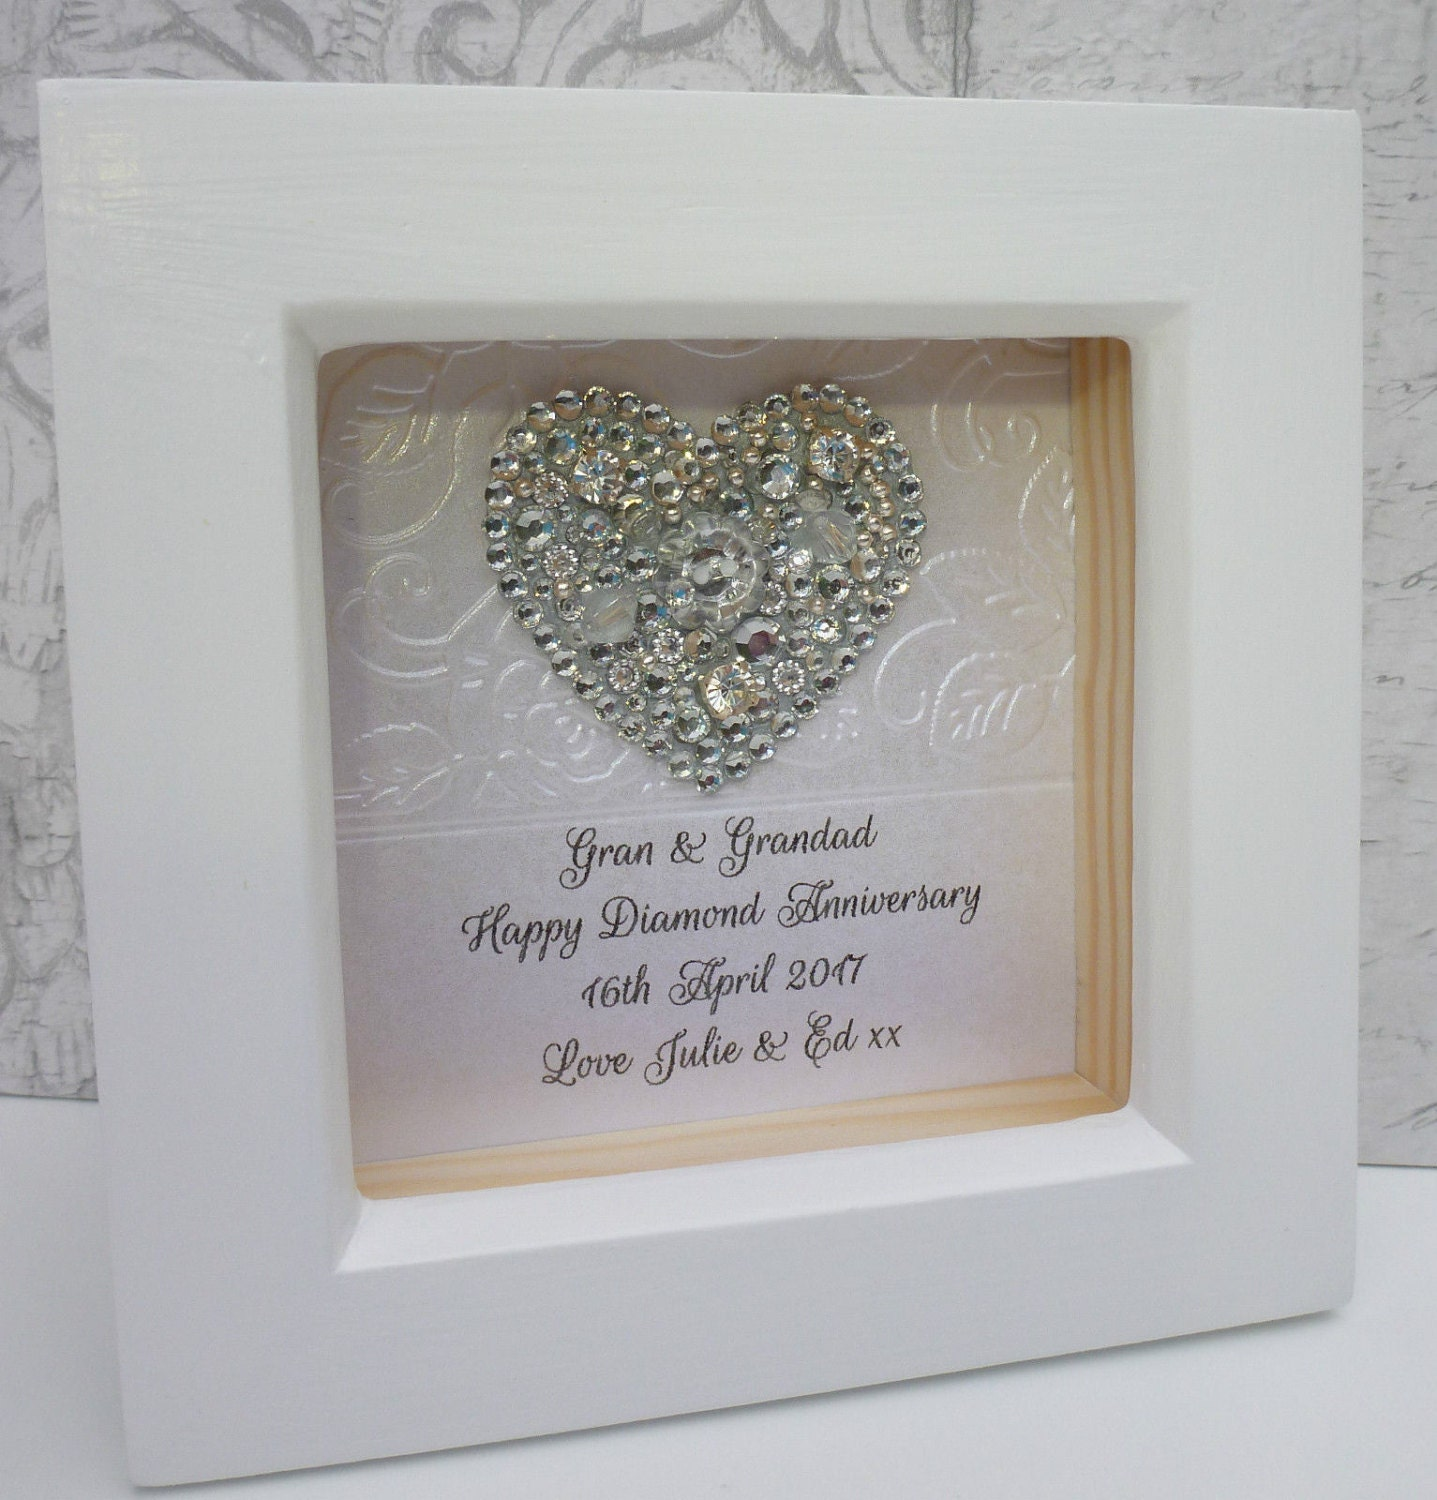 Gifts For 60th Wedding Anniversary: 60th Anniversary Gift, 15th Wedding Anniversary Gift